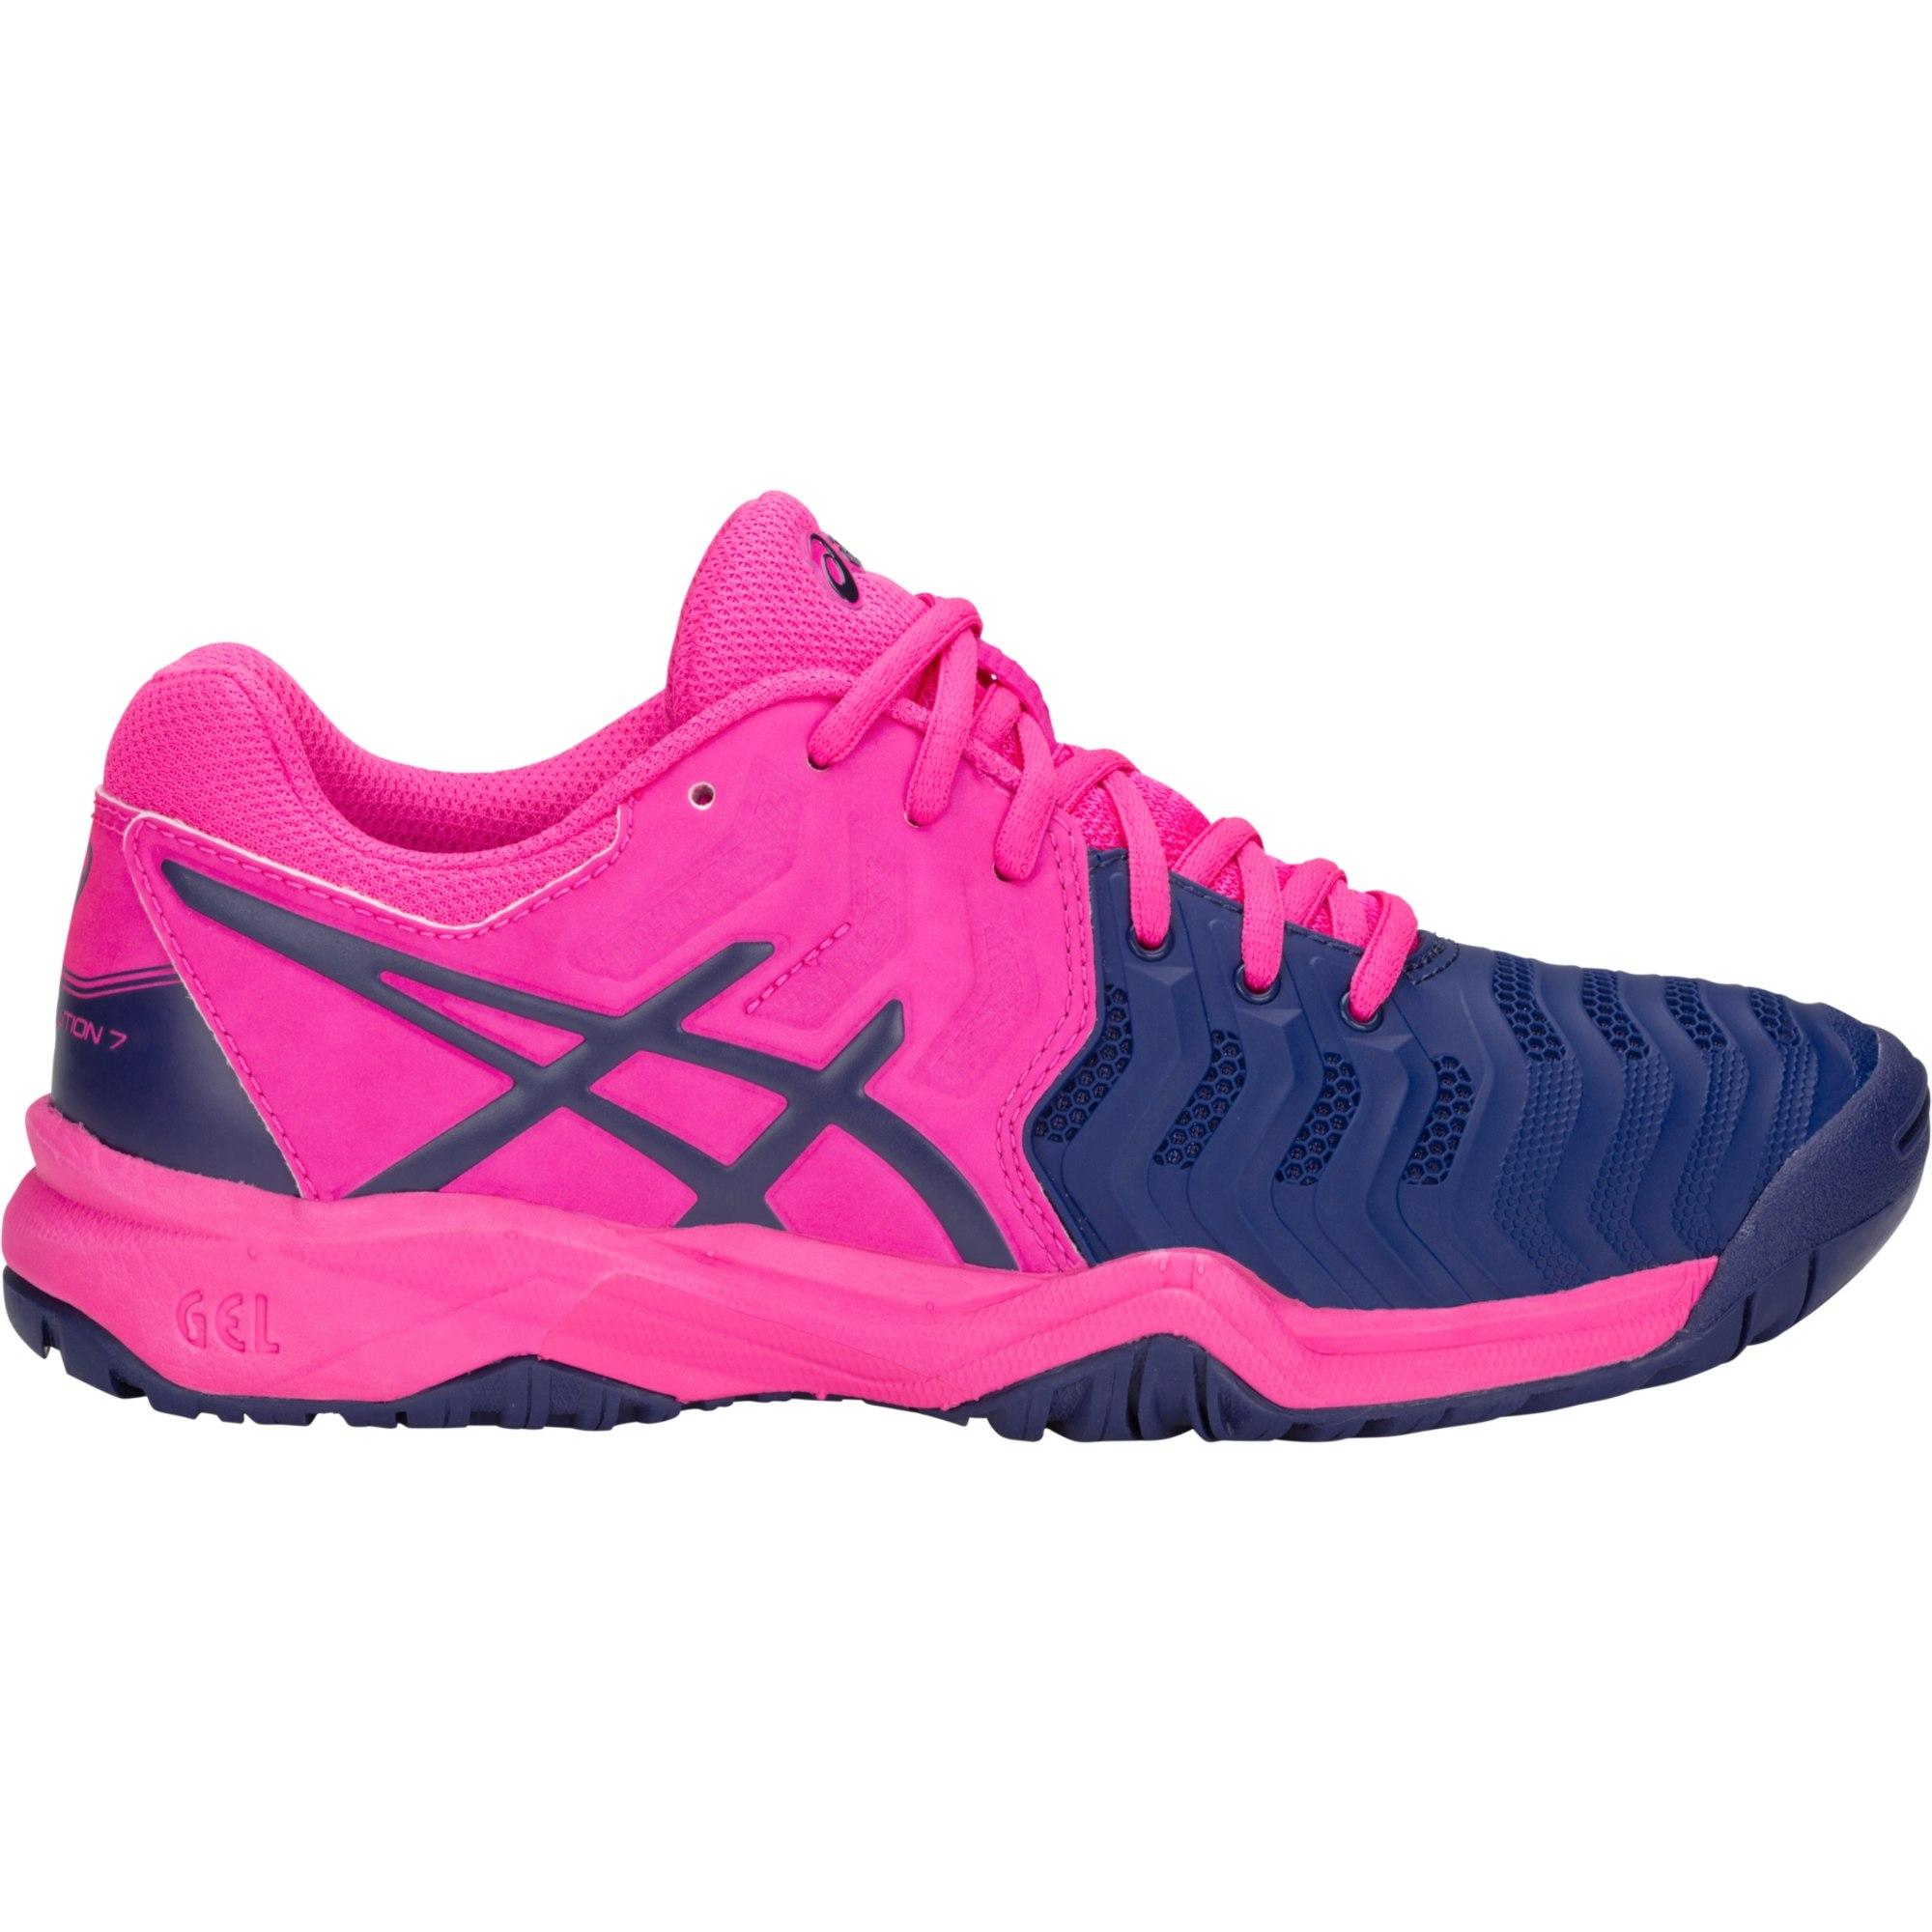 8fe09b170089 Asics Kids GEL-Resolution 7 GS Tennis Shoes - Pink Glow Blue Print -  Tennisnuts.com